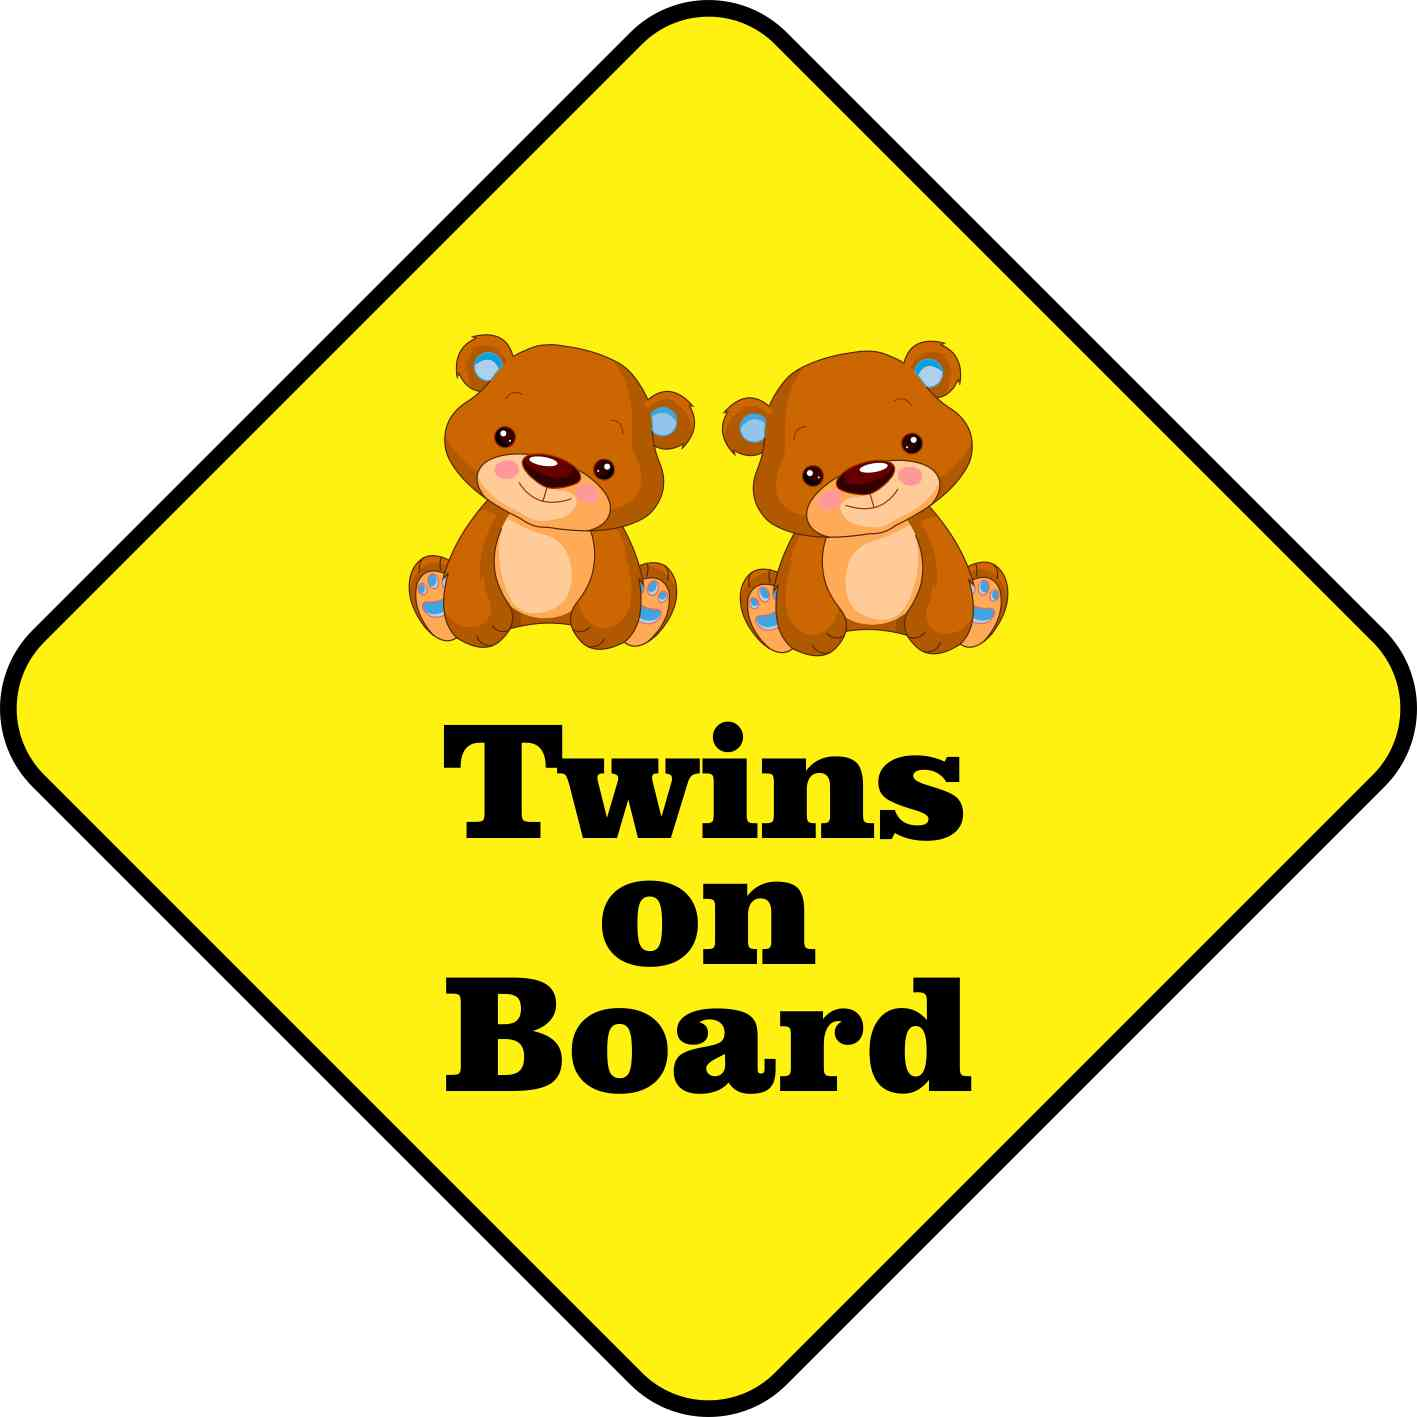 9.25in x 9.25in Boy Twins on Board Magnet Vinyl Vehicle Safety Magnets